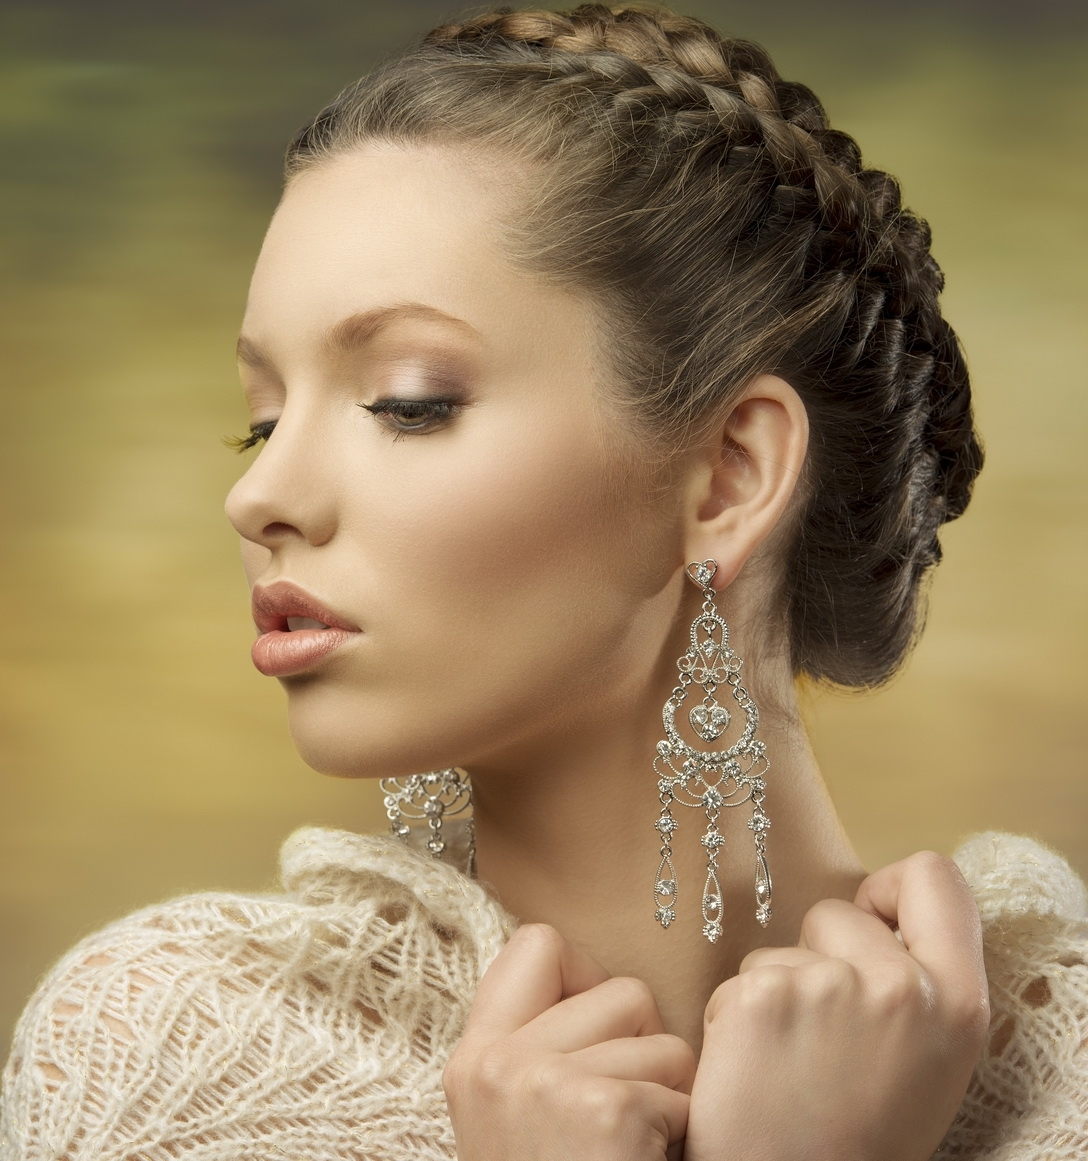 Trend Hairstyle And Haircut Ideas With Current Wedding Hairstyles For Short Hair And Round Face (View 4 of 15)